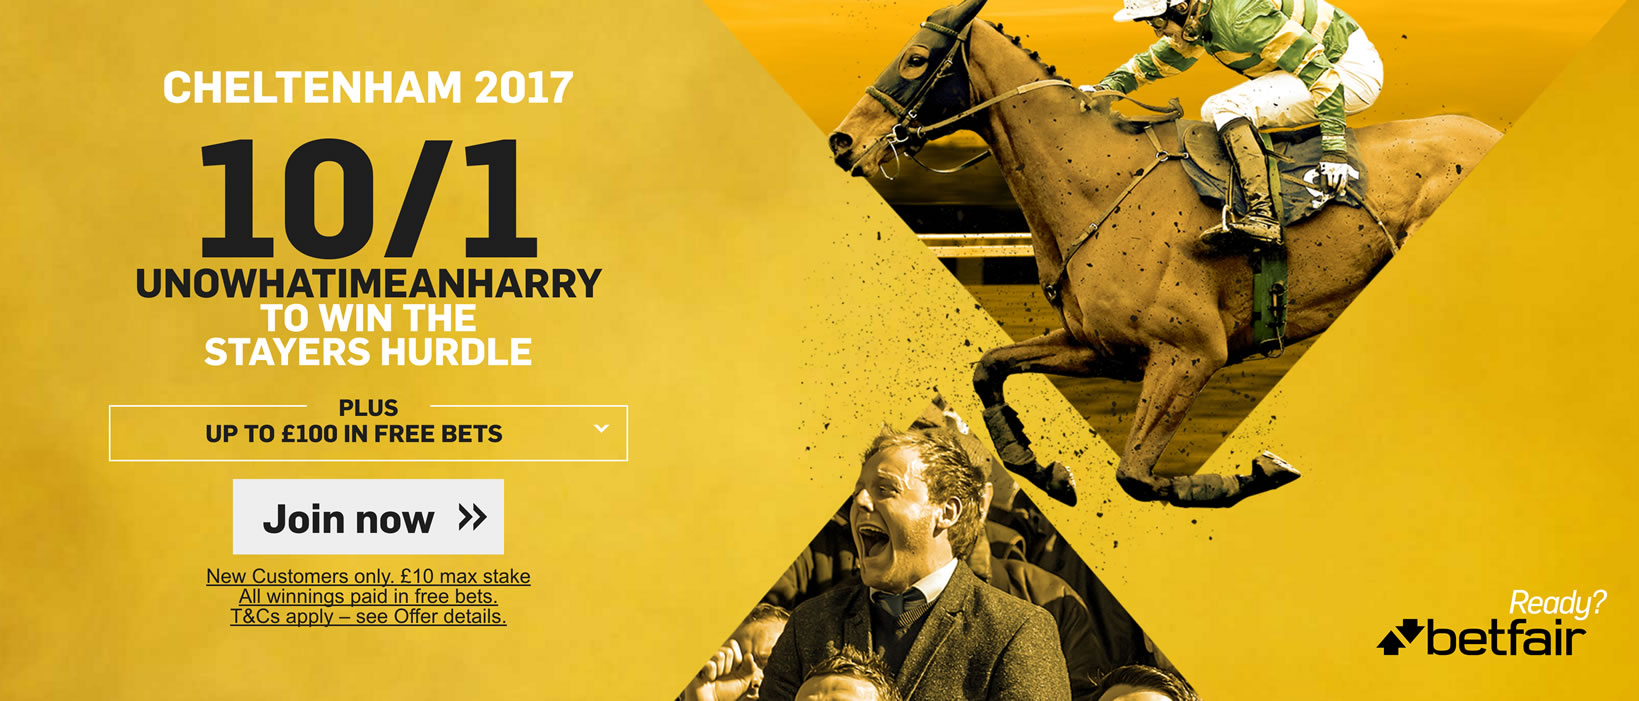 cheltenham enhanced odds